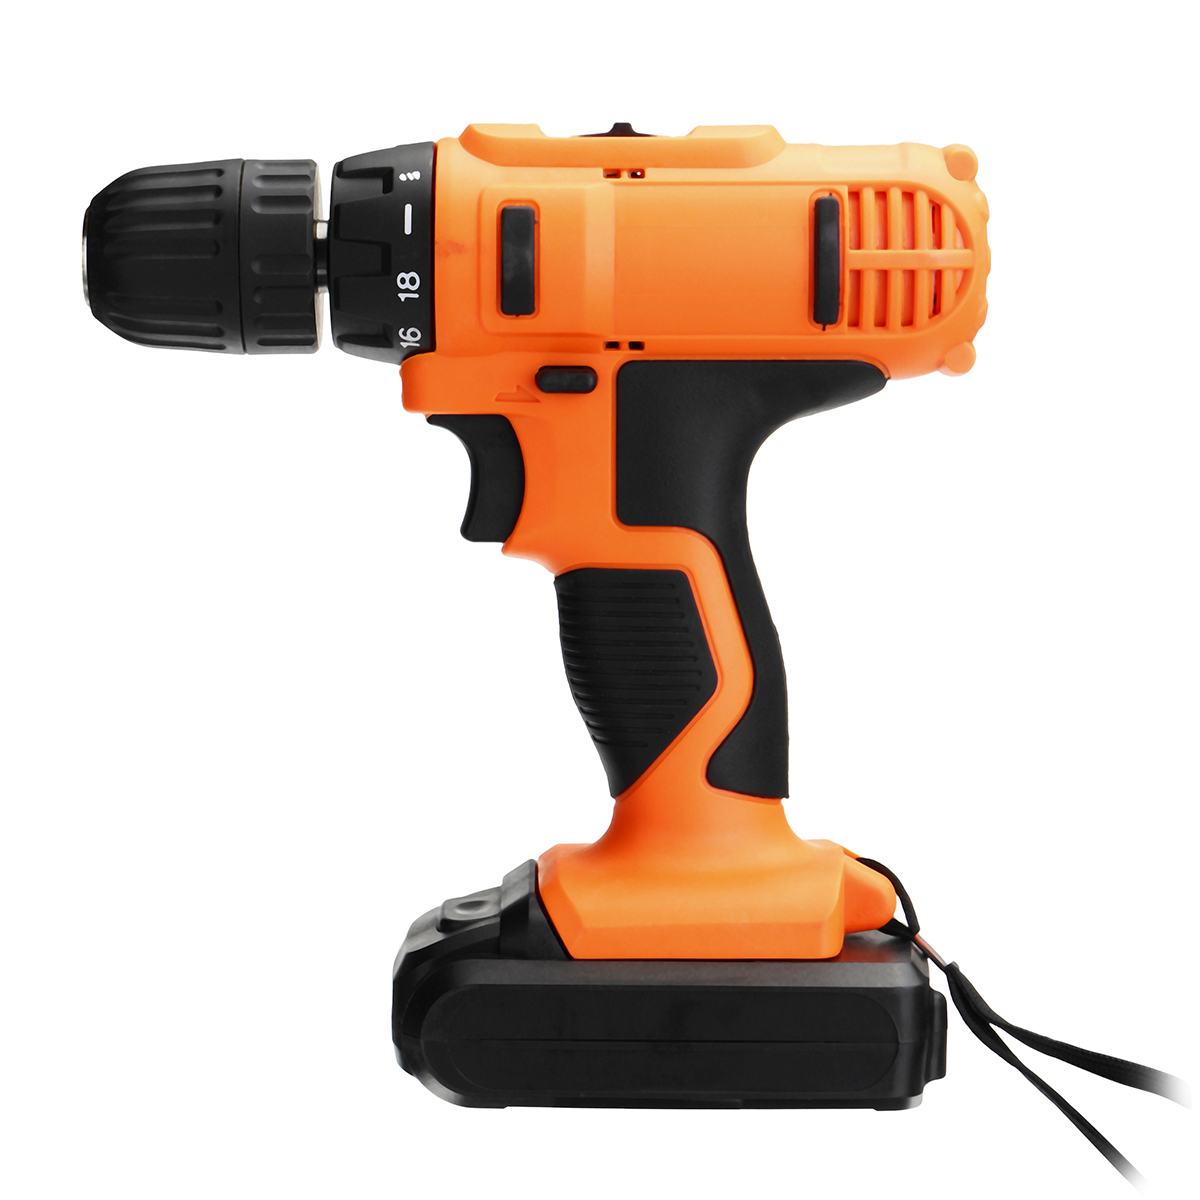 18V 20N.m DC Lithium-Ion Battery Cordless Drill/Driver Power Tools Set Screwdriver Electric Drill Kit 18v dc lithium ion battery cordless drill driver power tools screwdriver electric drill with battery included